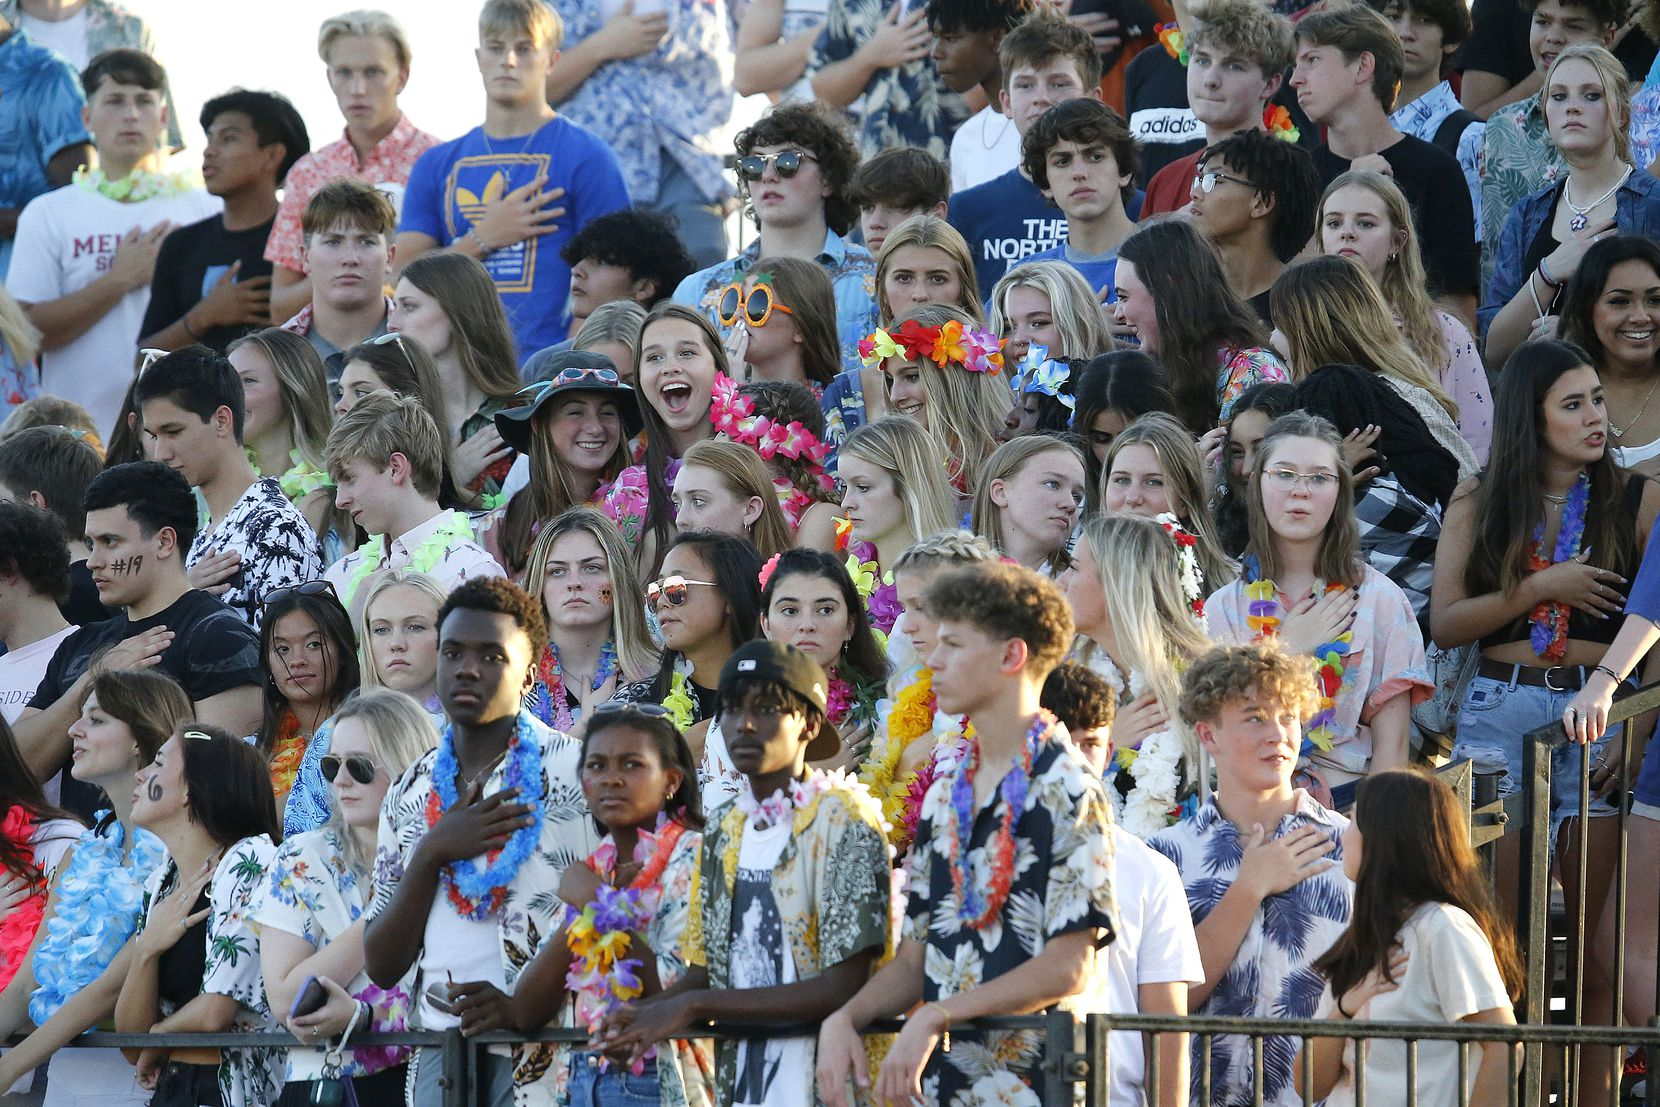 The Melissa High School student section stands at attention during the national anthem as Melissa High School hosted Celina High School at Cardinal Field in Melissa on Friday night, August 27, 2021. (Stewart F. House/Special Contributor)